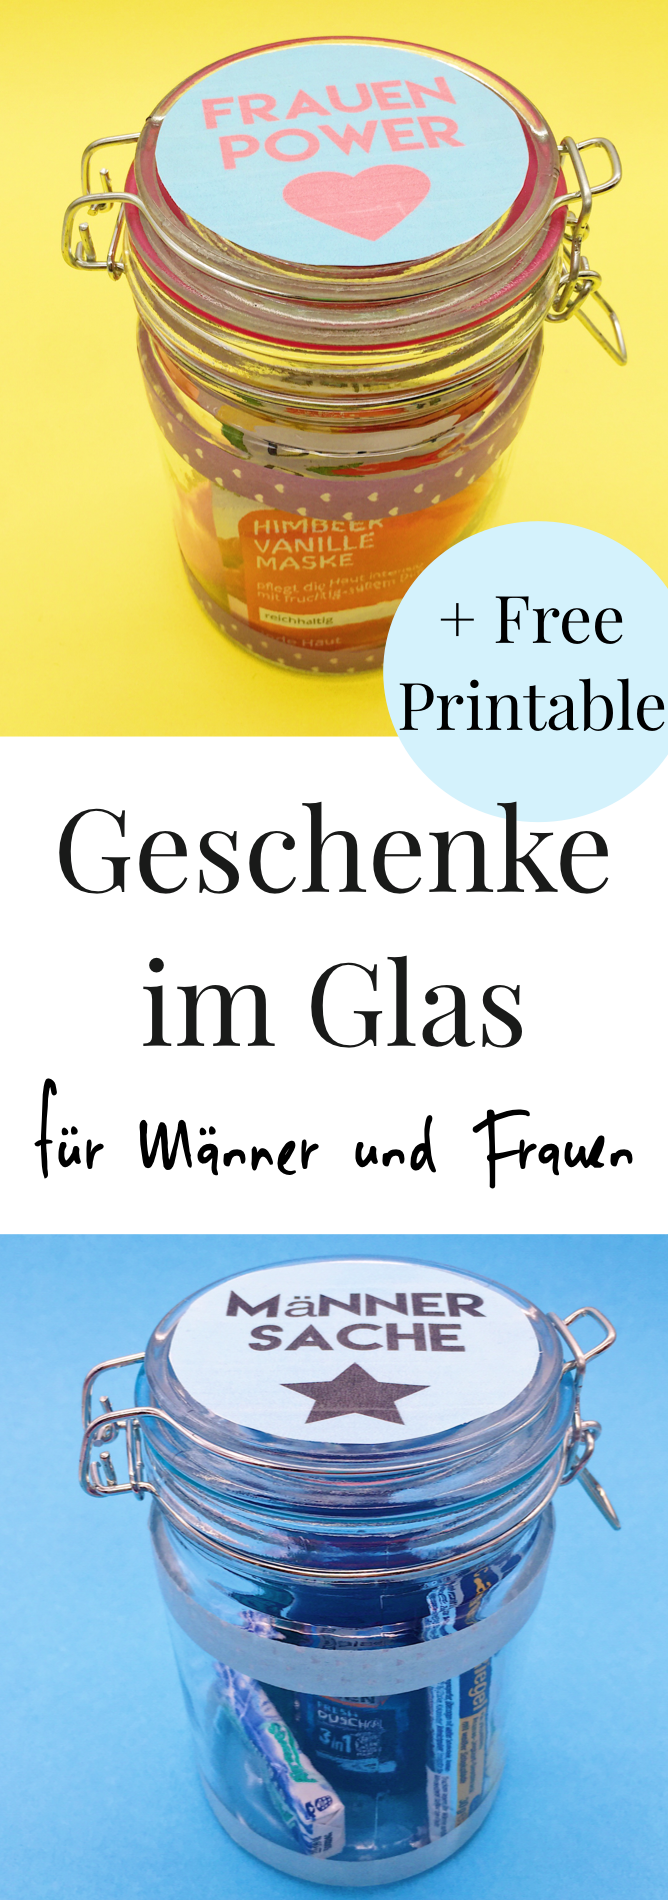 diy geschenke im glas selber machen geschenkideen f r frauen mann geschenke und diy geschenkideen. Black Bedroom Furniture Sets. Home Design Ideas